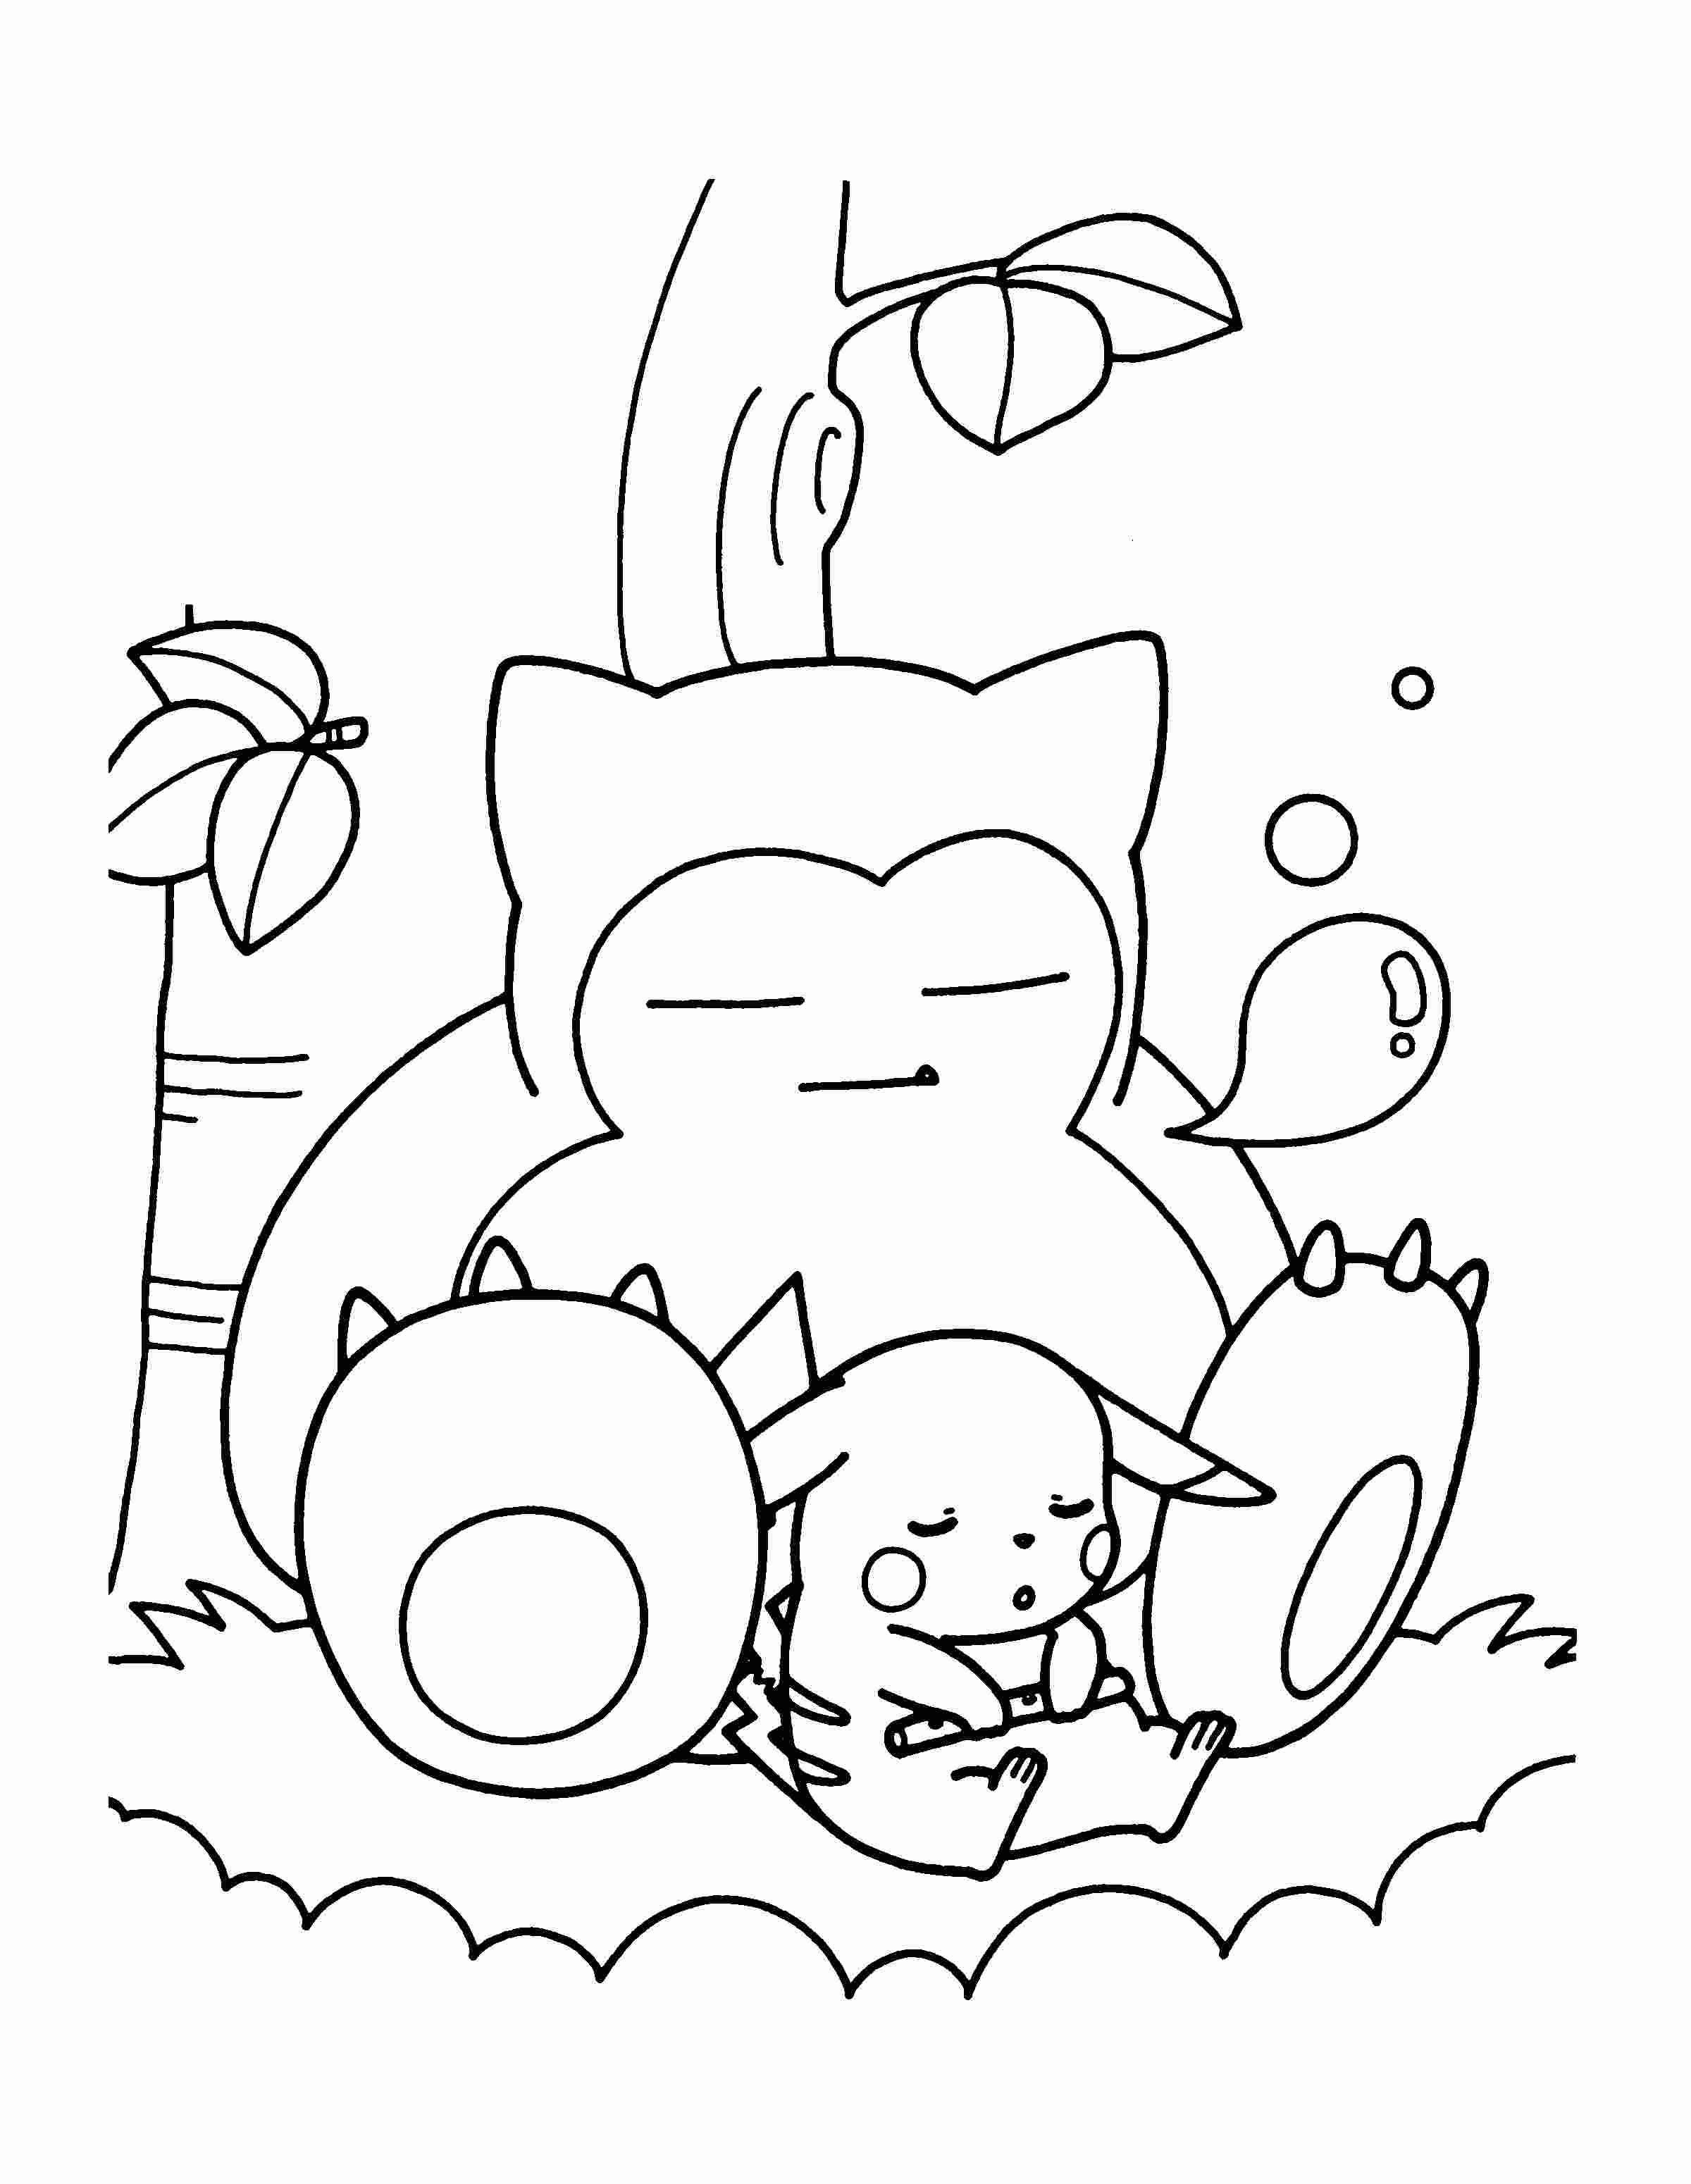 Pokemon Snorlax Coloring Pages Pokemon Coloring Sheets Pokemon Coloring Pages Pikachu Coloring Page